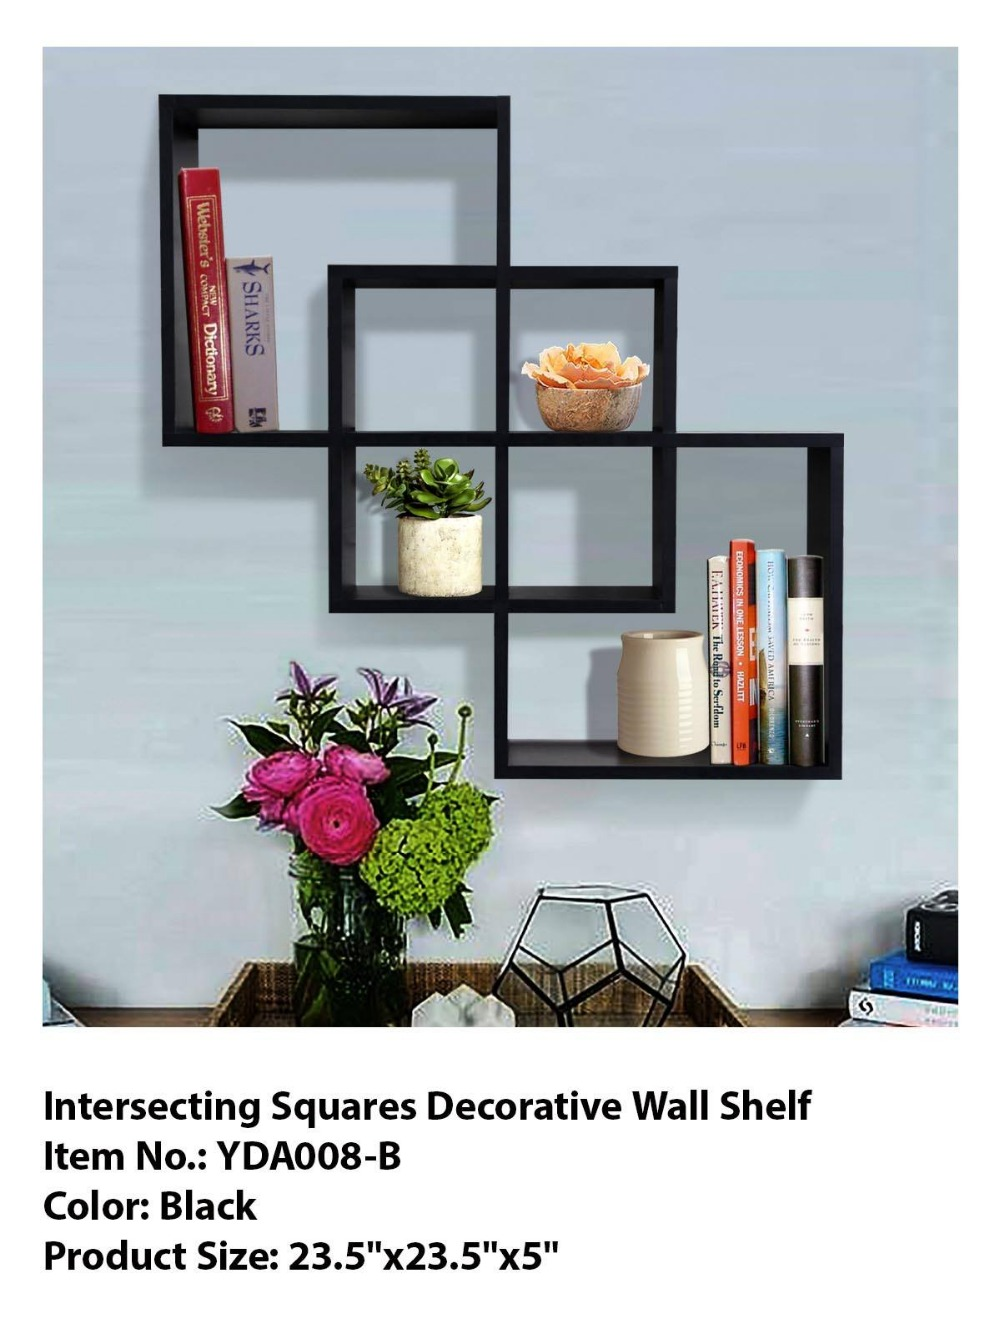 6 pieces interlock wall cubedecorative wooden wall cubescube 6 pieces interlock wall cubedecorative wooden wall cubescube wall shelf amipublicfo Image collections